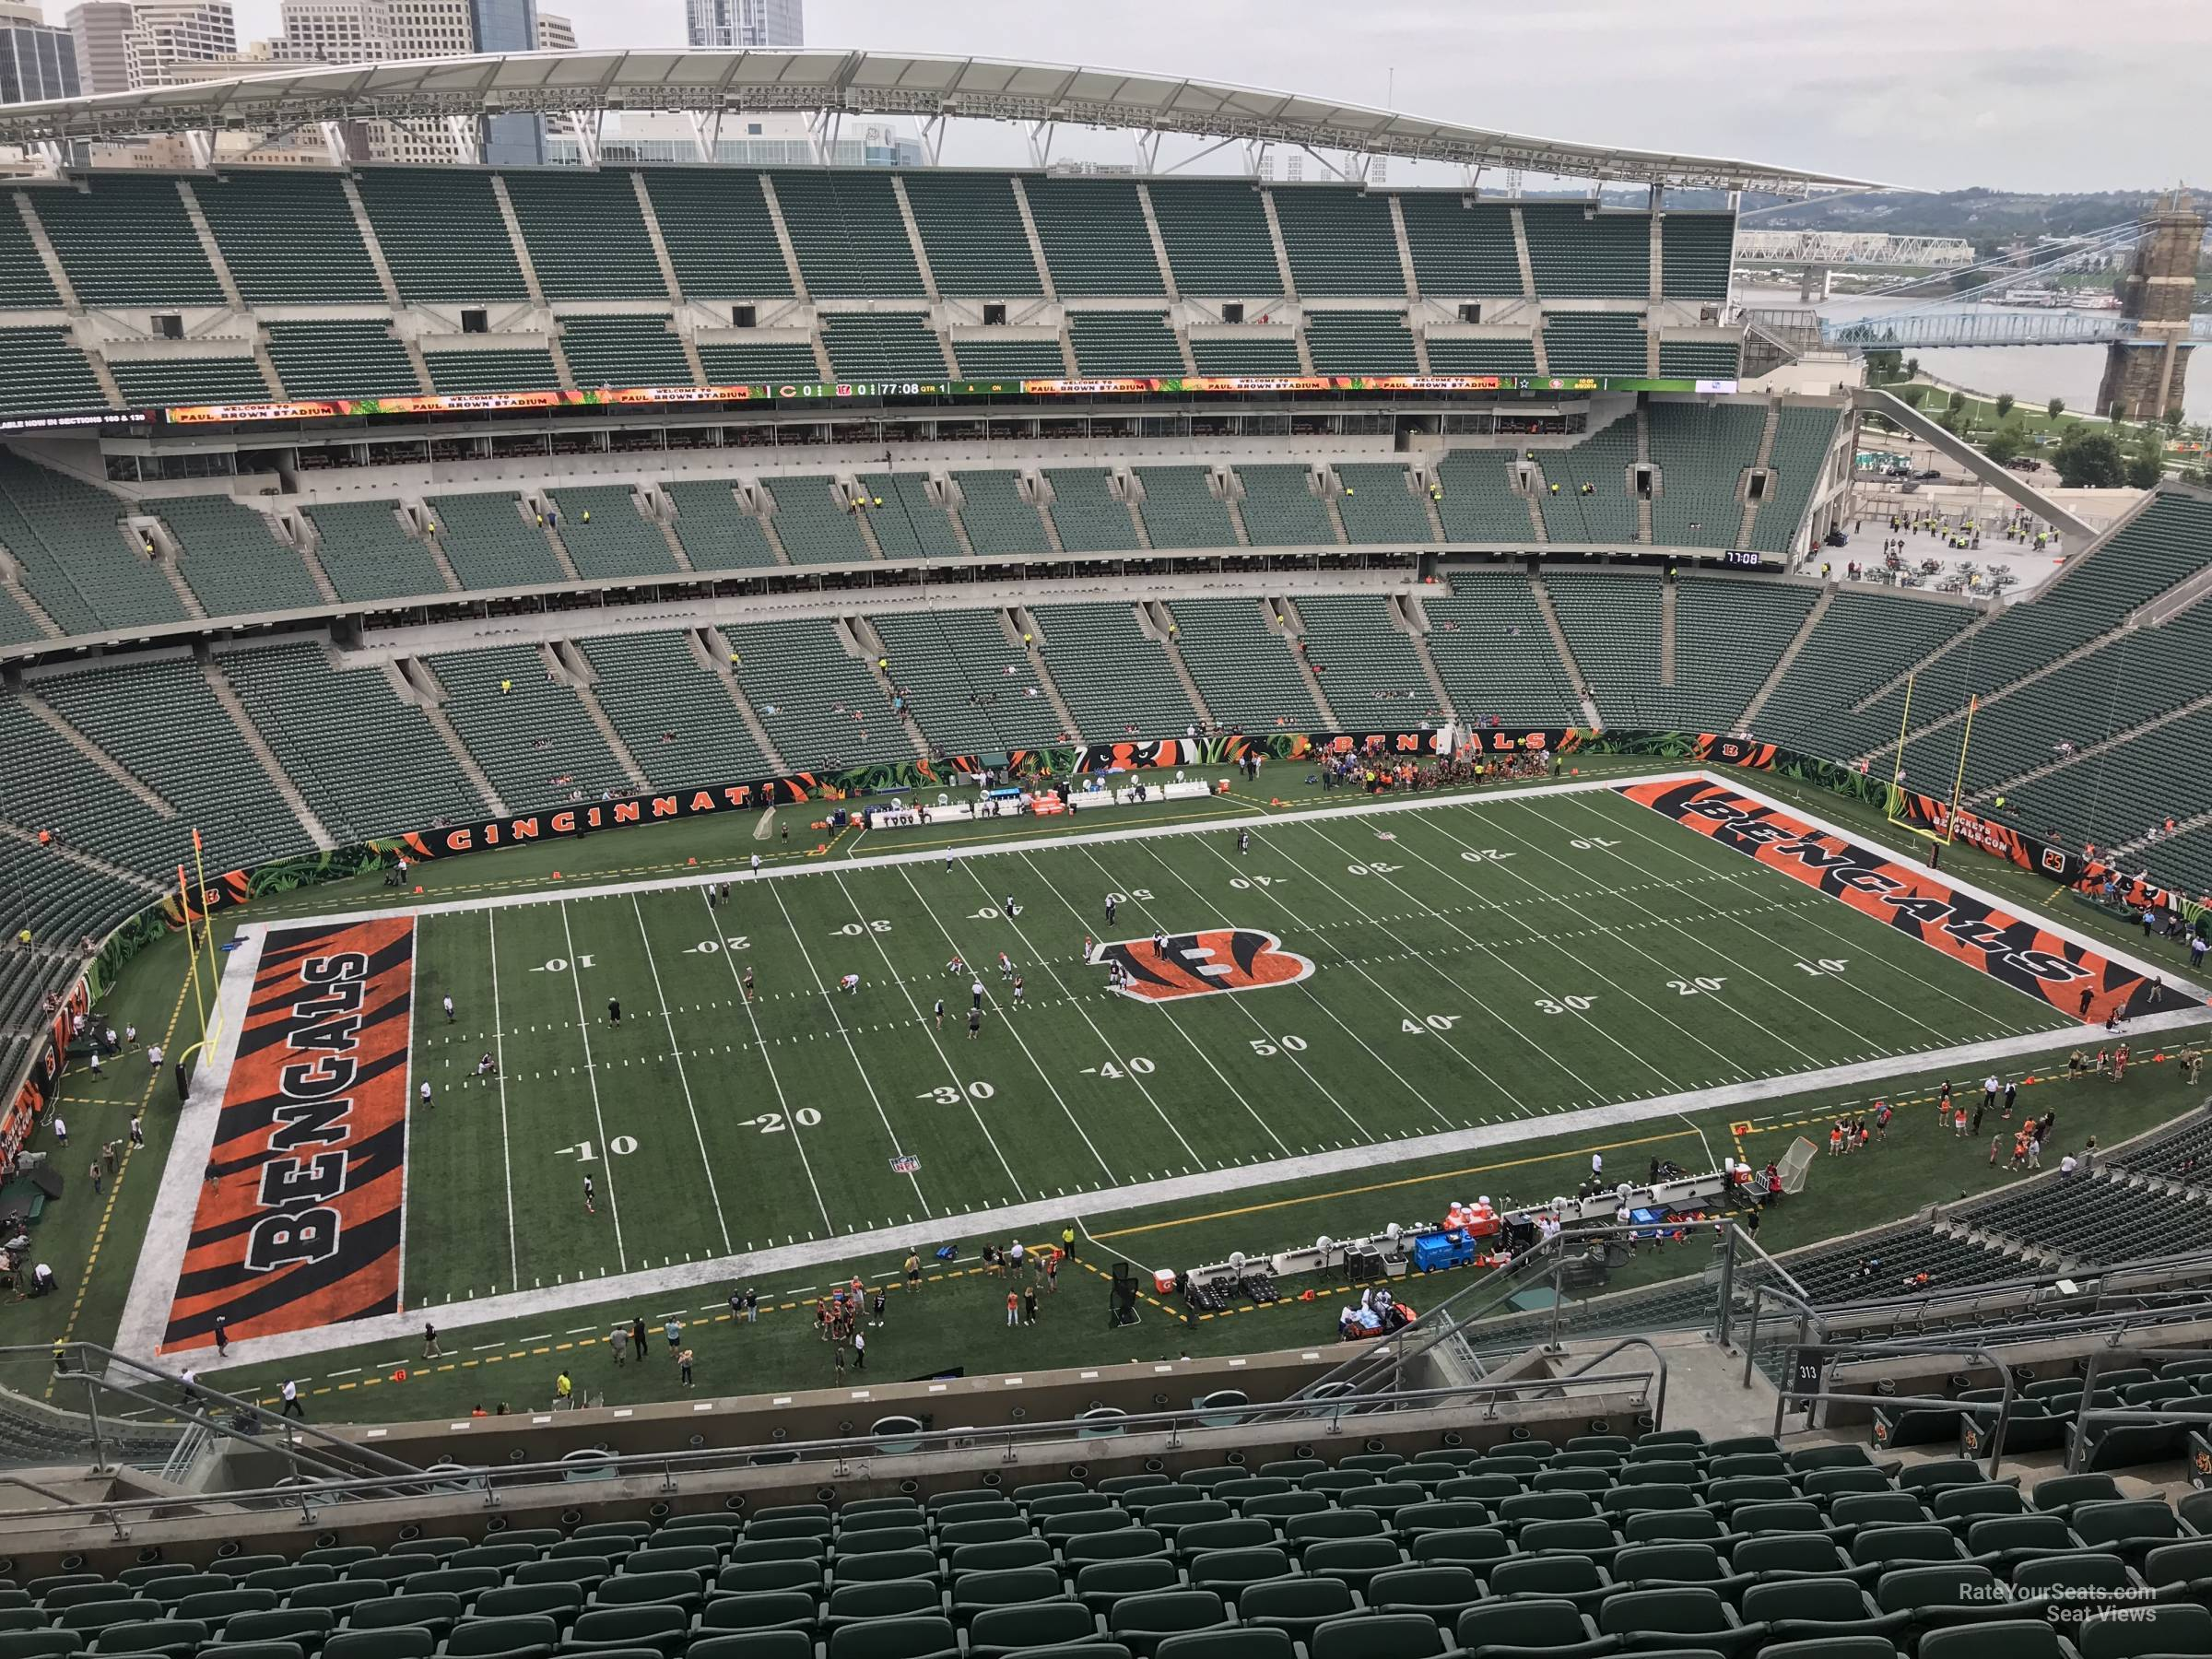 Section 313 seat view